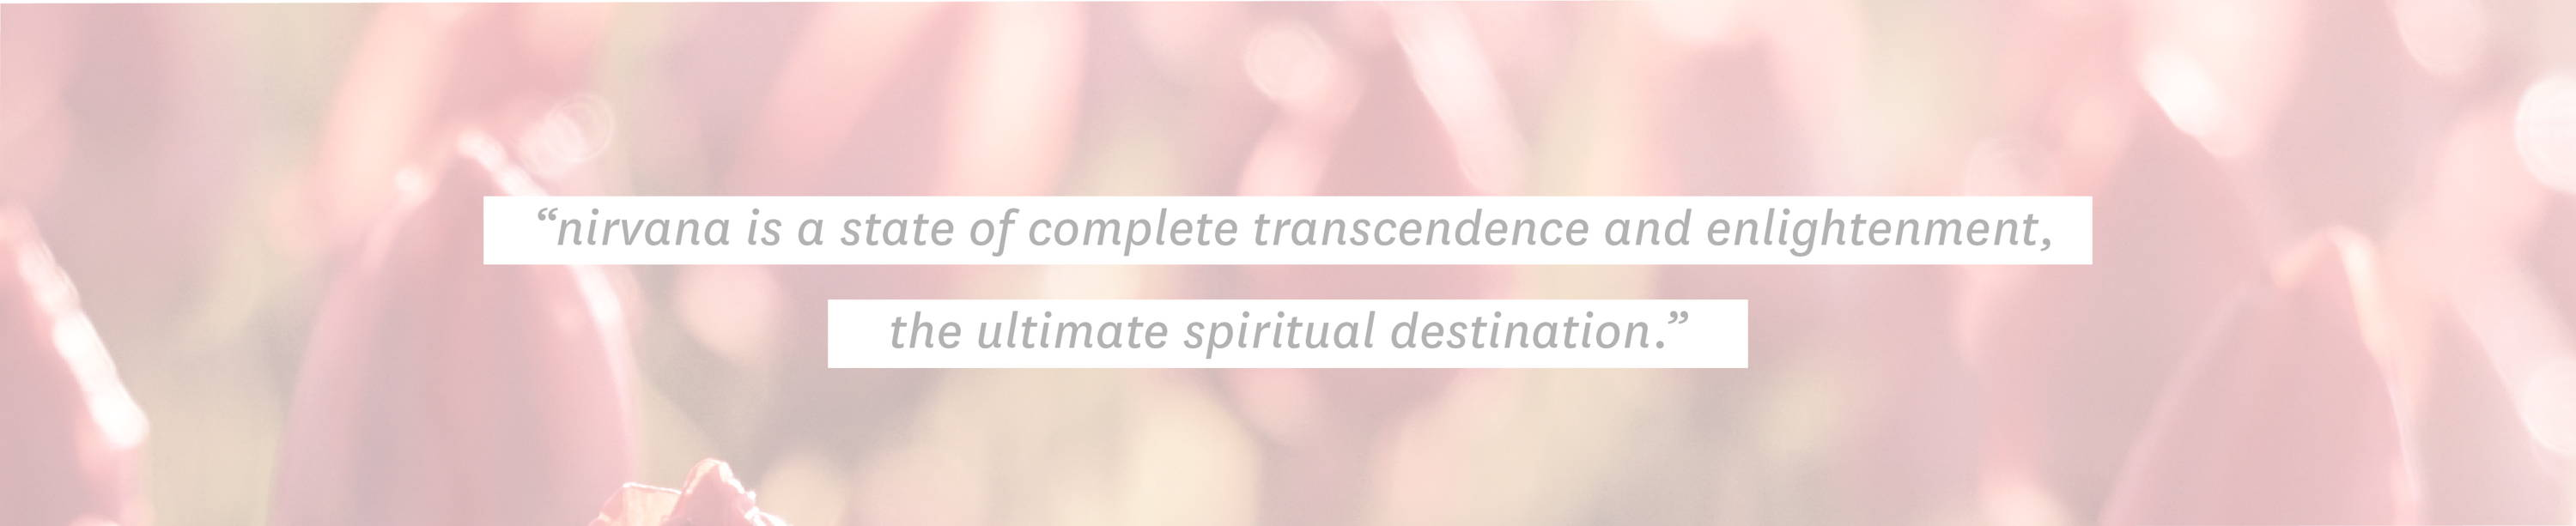 """nirvana is a state of complete transcendence and enlightenment, the ultimate spiritual destination."""